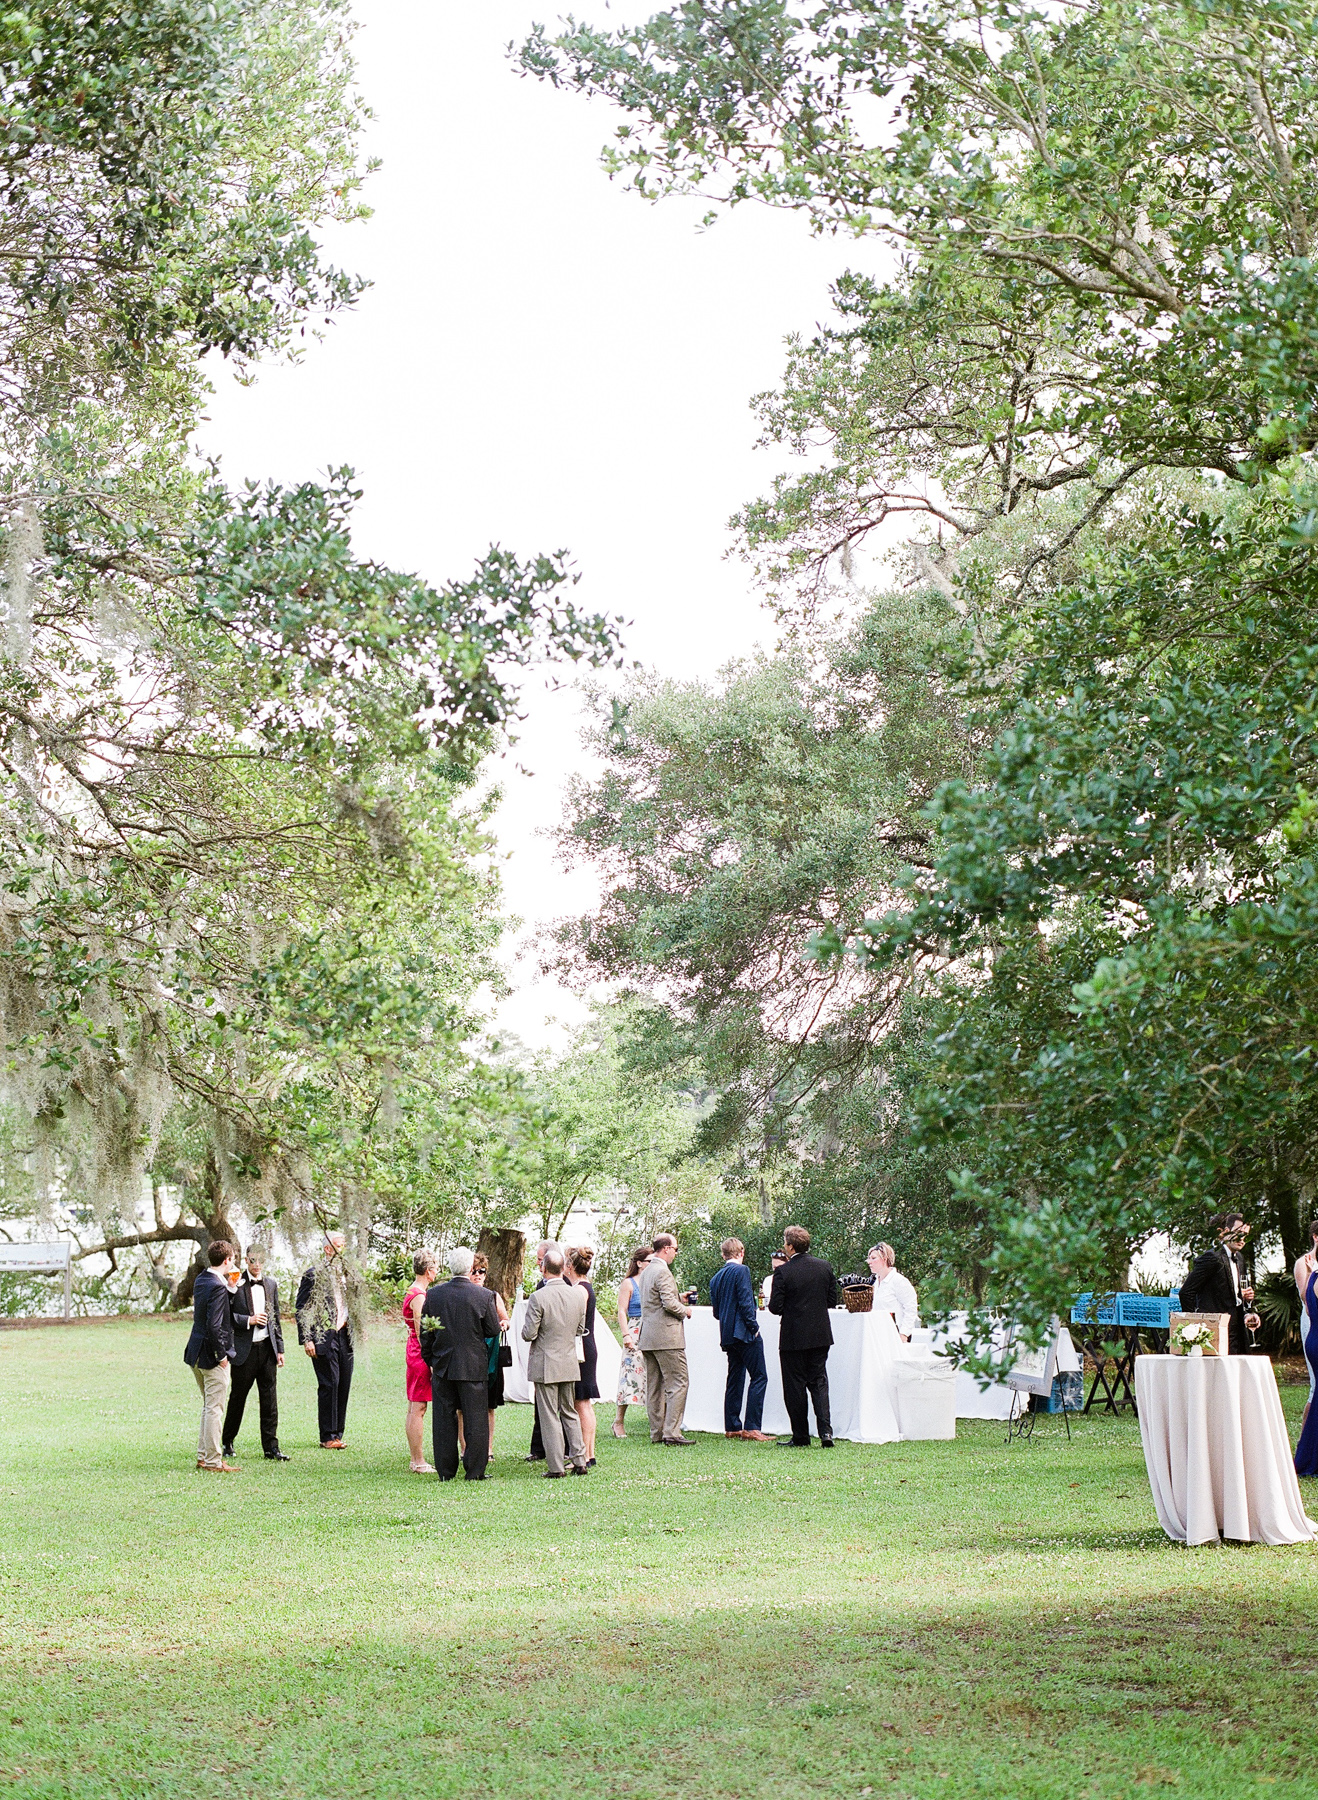 NC-Garden-Wedding-Venue-Film-Photographer-05.jpg